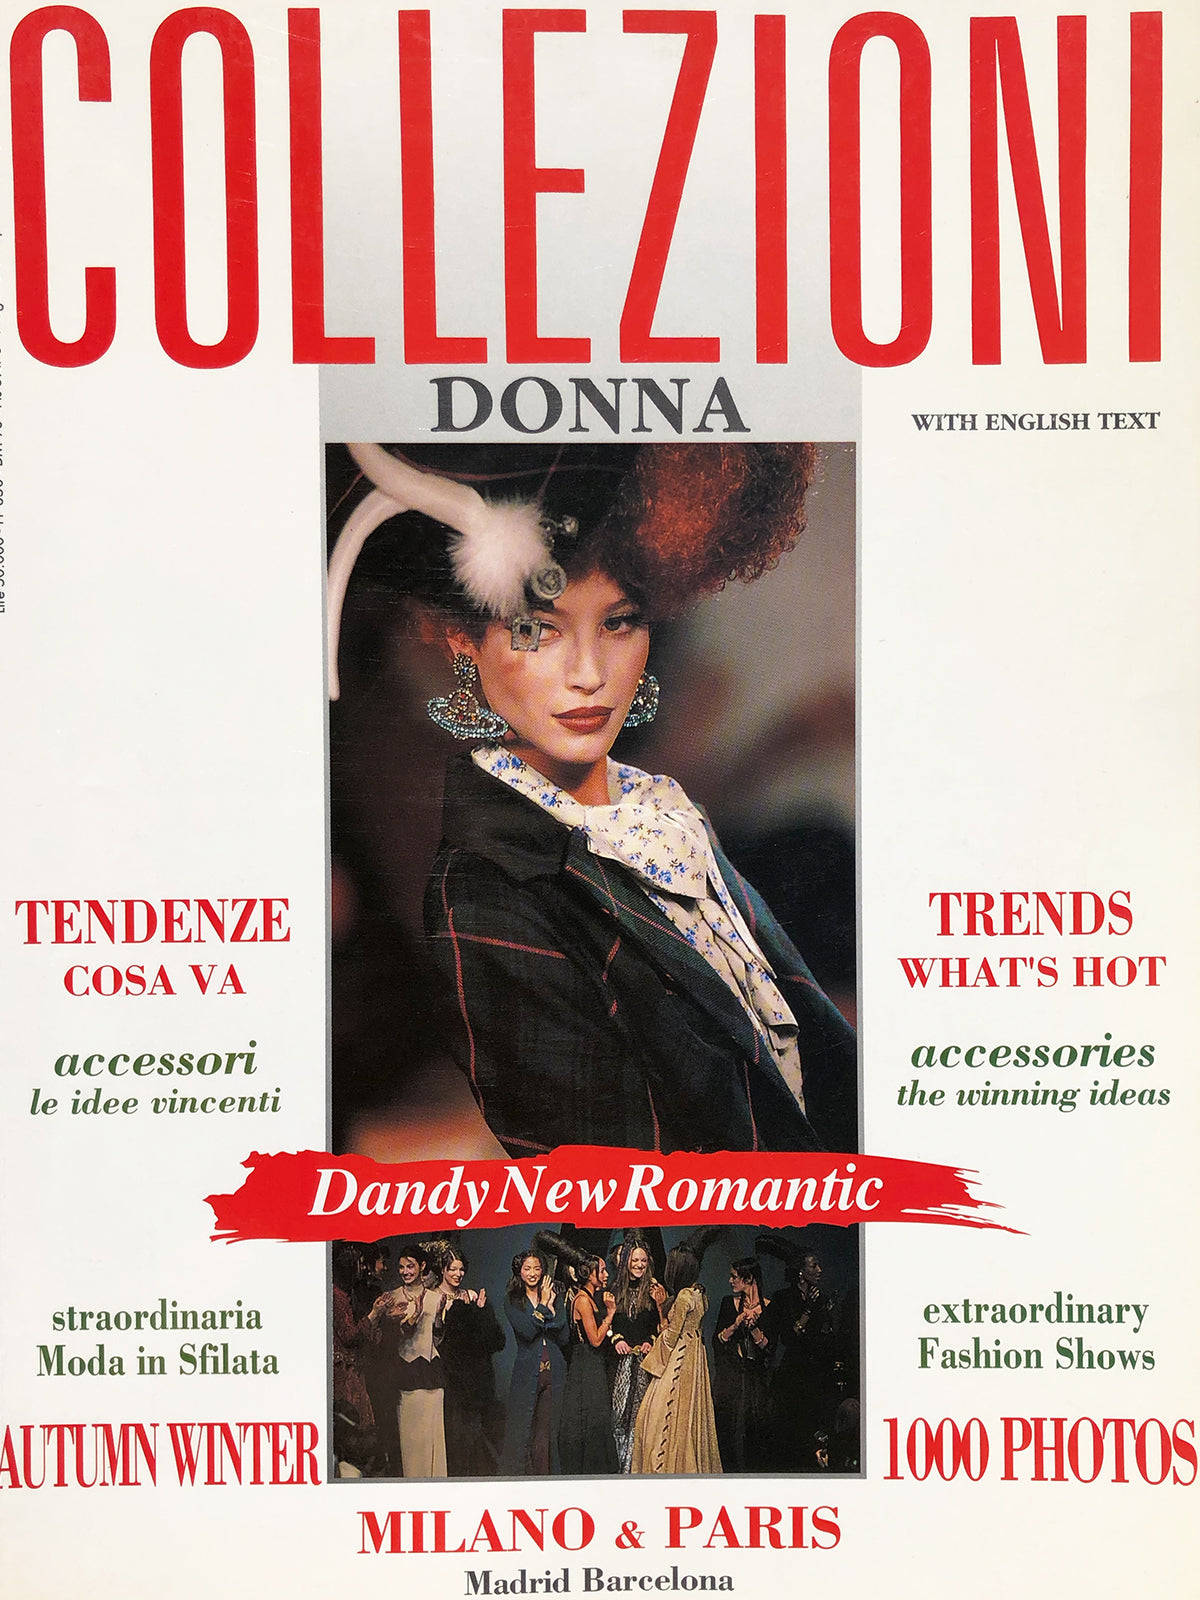 Archived - Collezioni N. 34 Prêt-a-Porter Fall/Winter 1993/1994